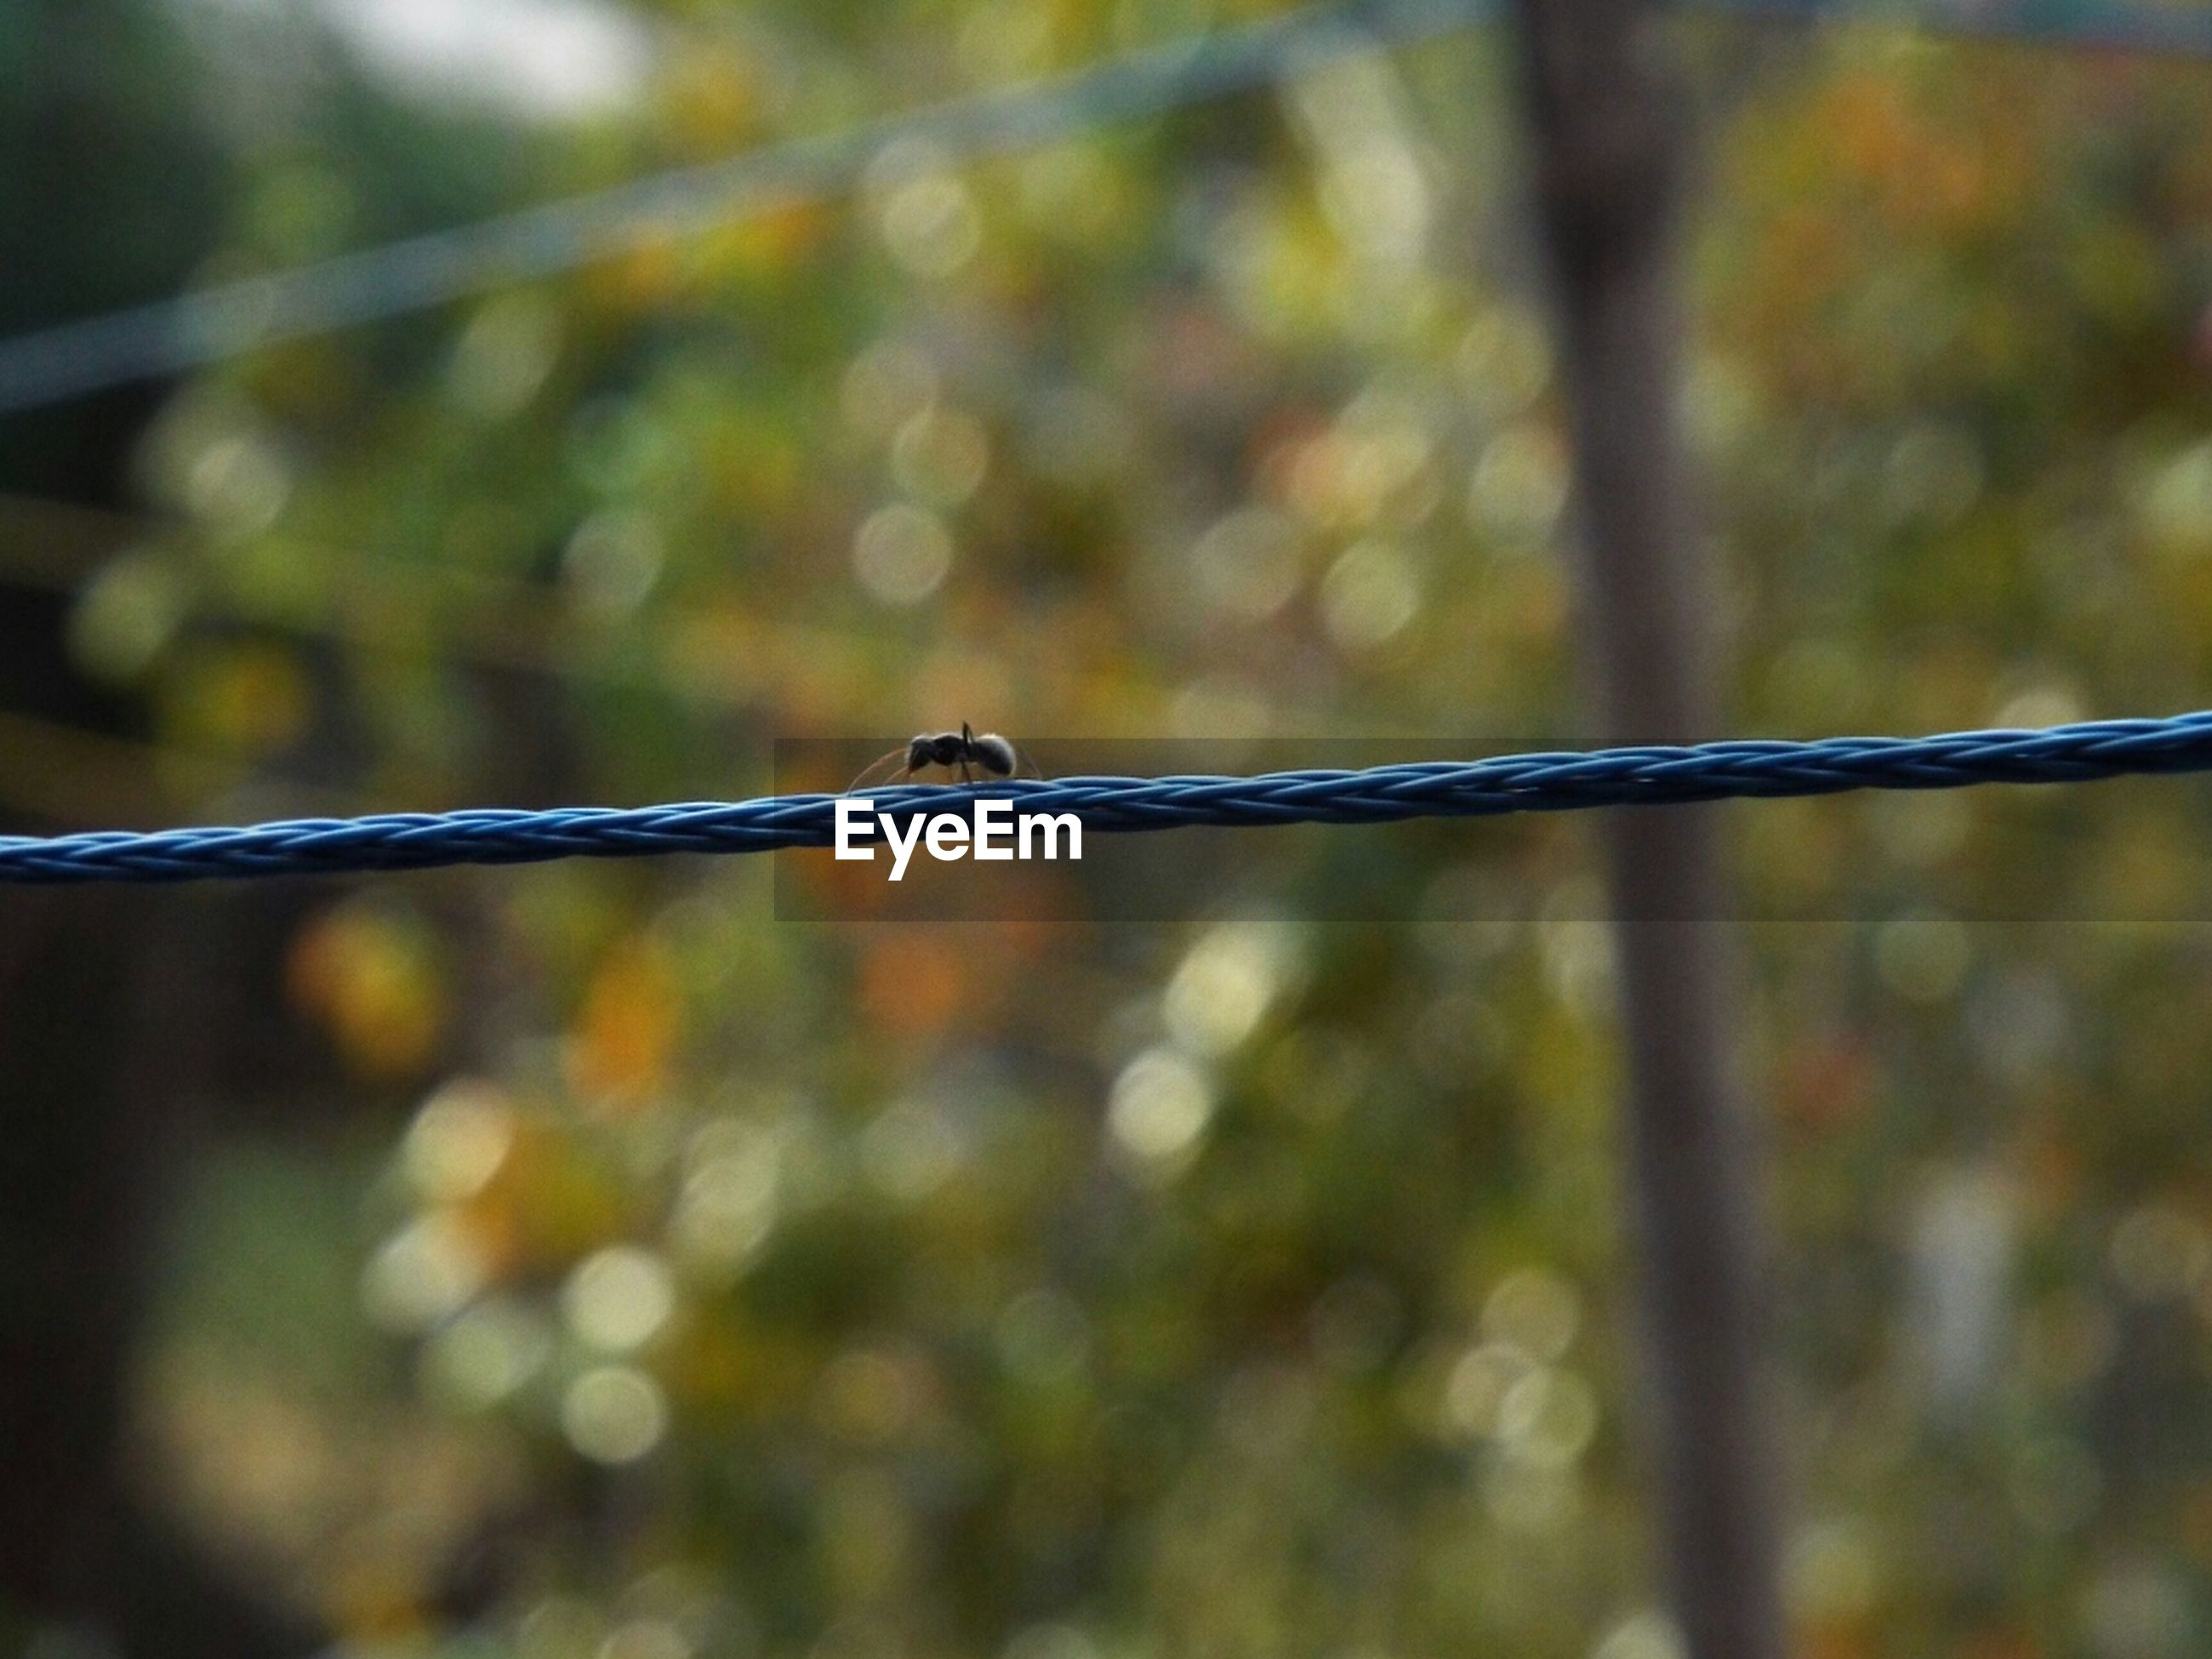 focus on foreground, close-up, metal, protection, safety, fence, security, barbed wire, chainlink fence, metallic, selective focus, day, twig, outdoors, nature, no people, drop, detail, connection, spider web